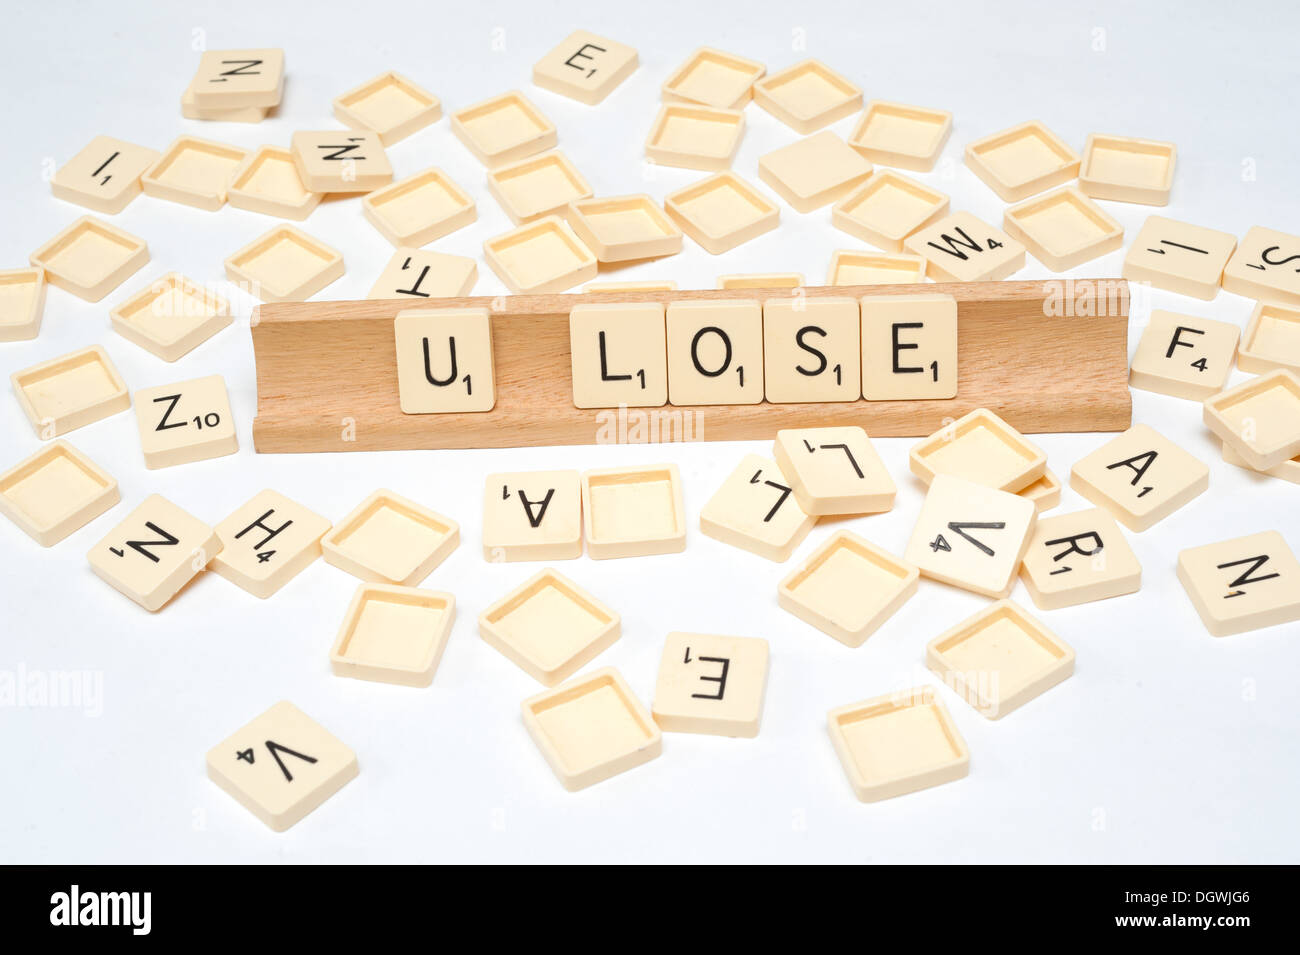 'U Lose' written in scrabble tiles - Stock Image